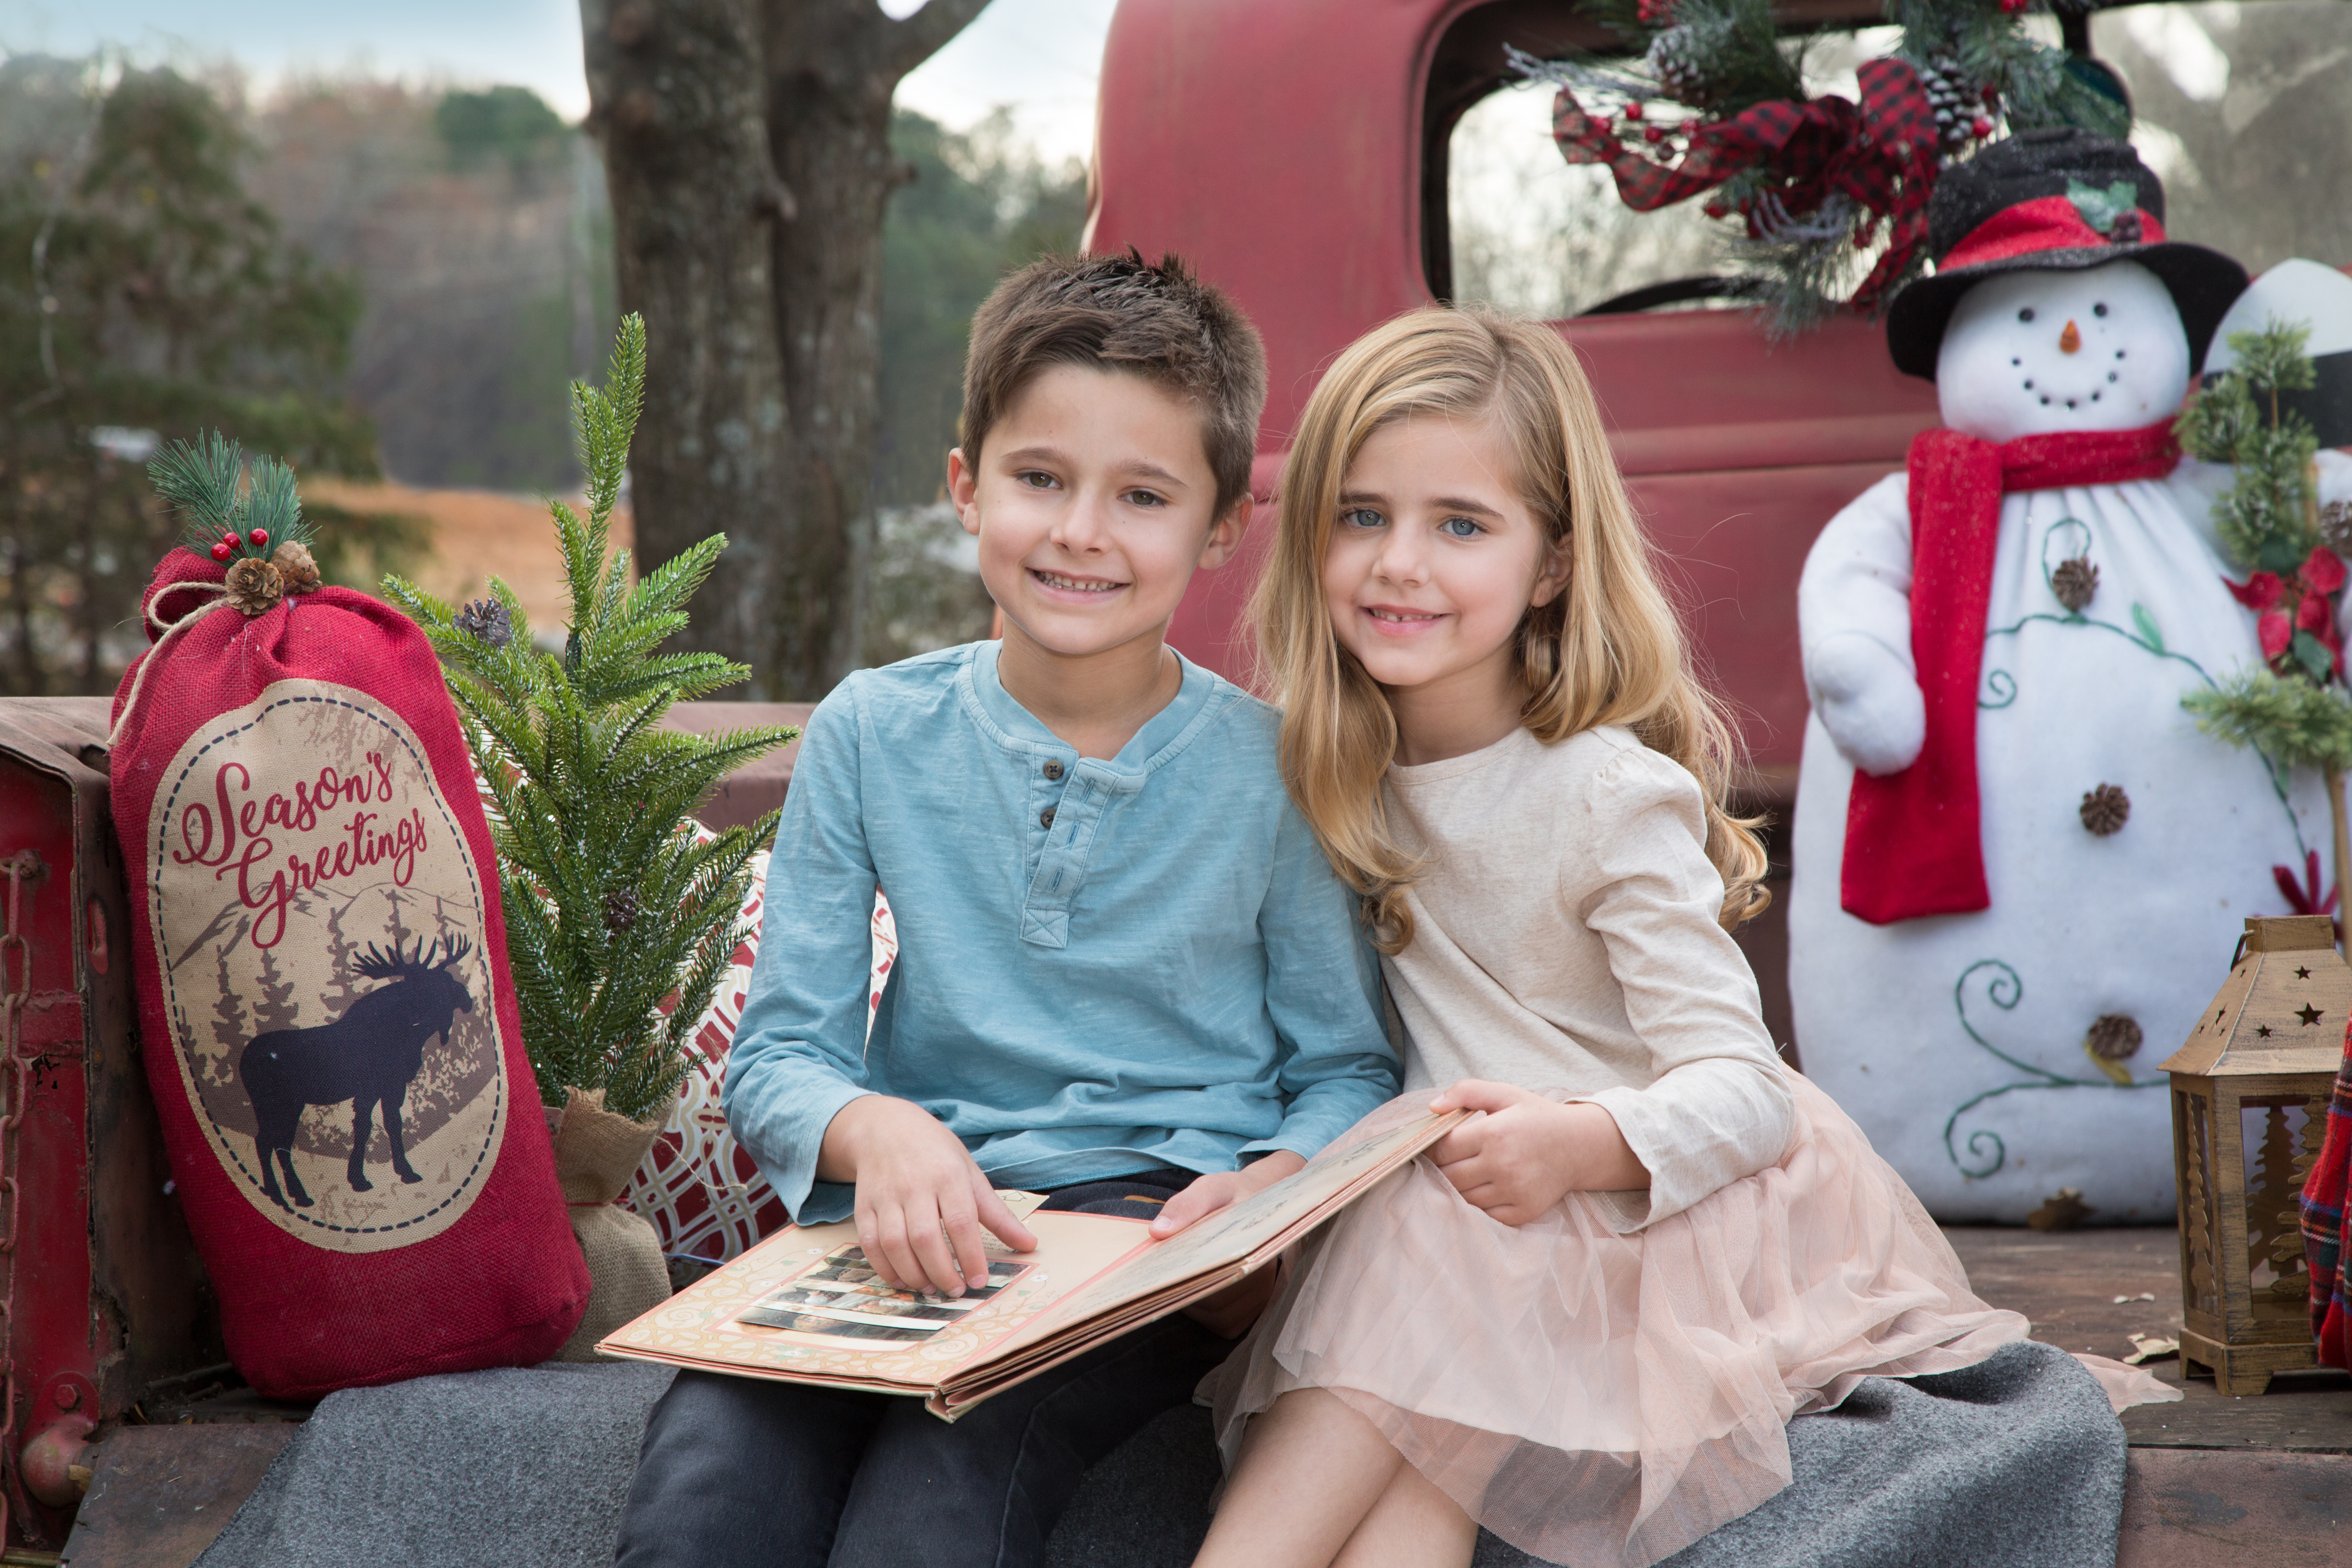 Christmas Red Truck Mini Sessions!